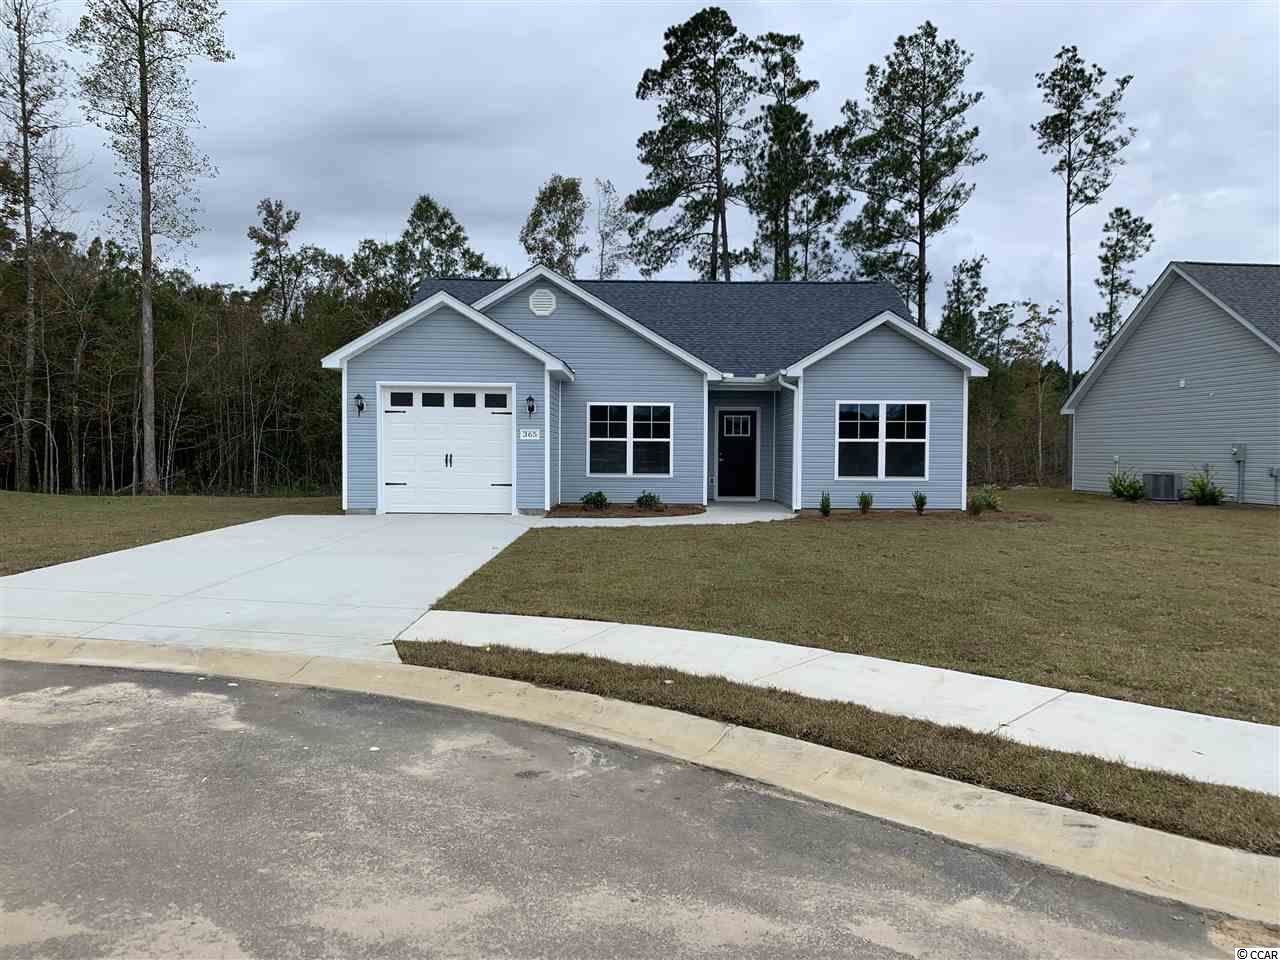 365 Shallow Cove Dr. - Photo 1